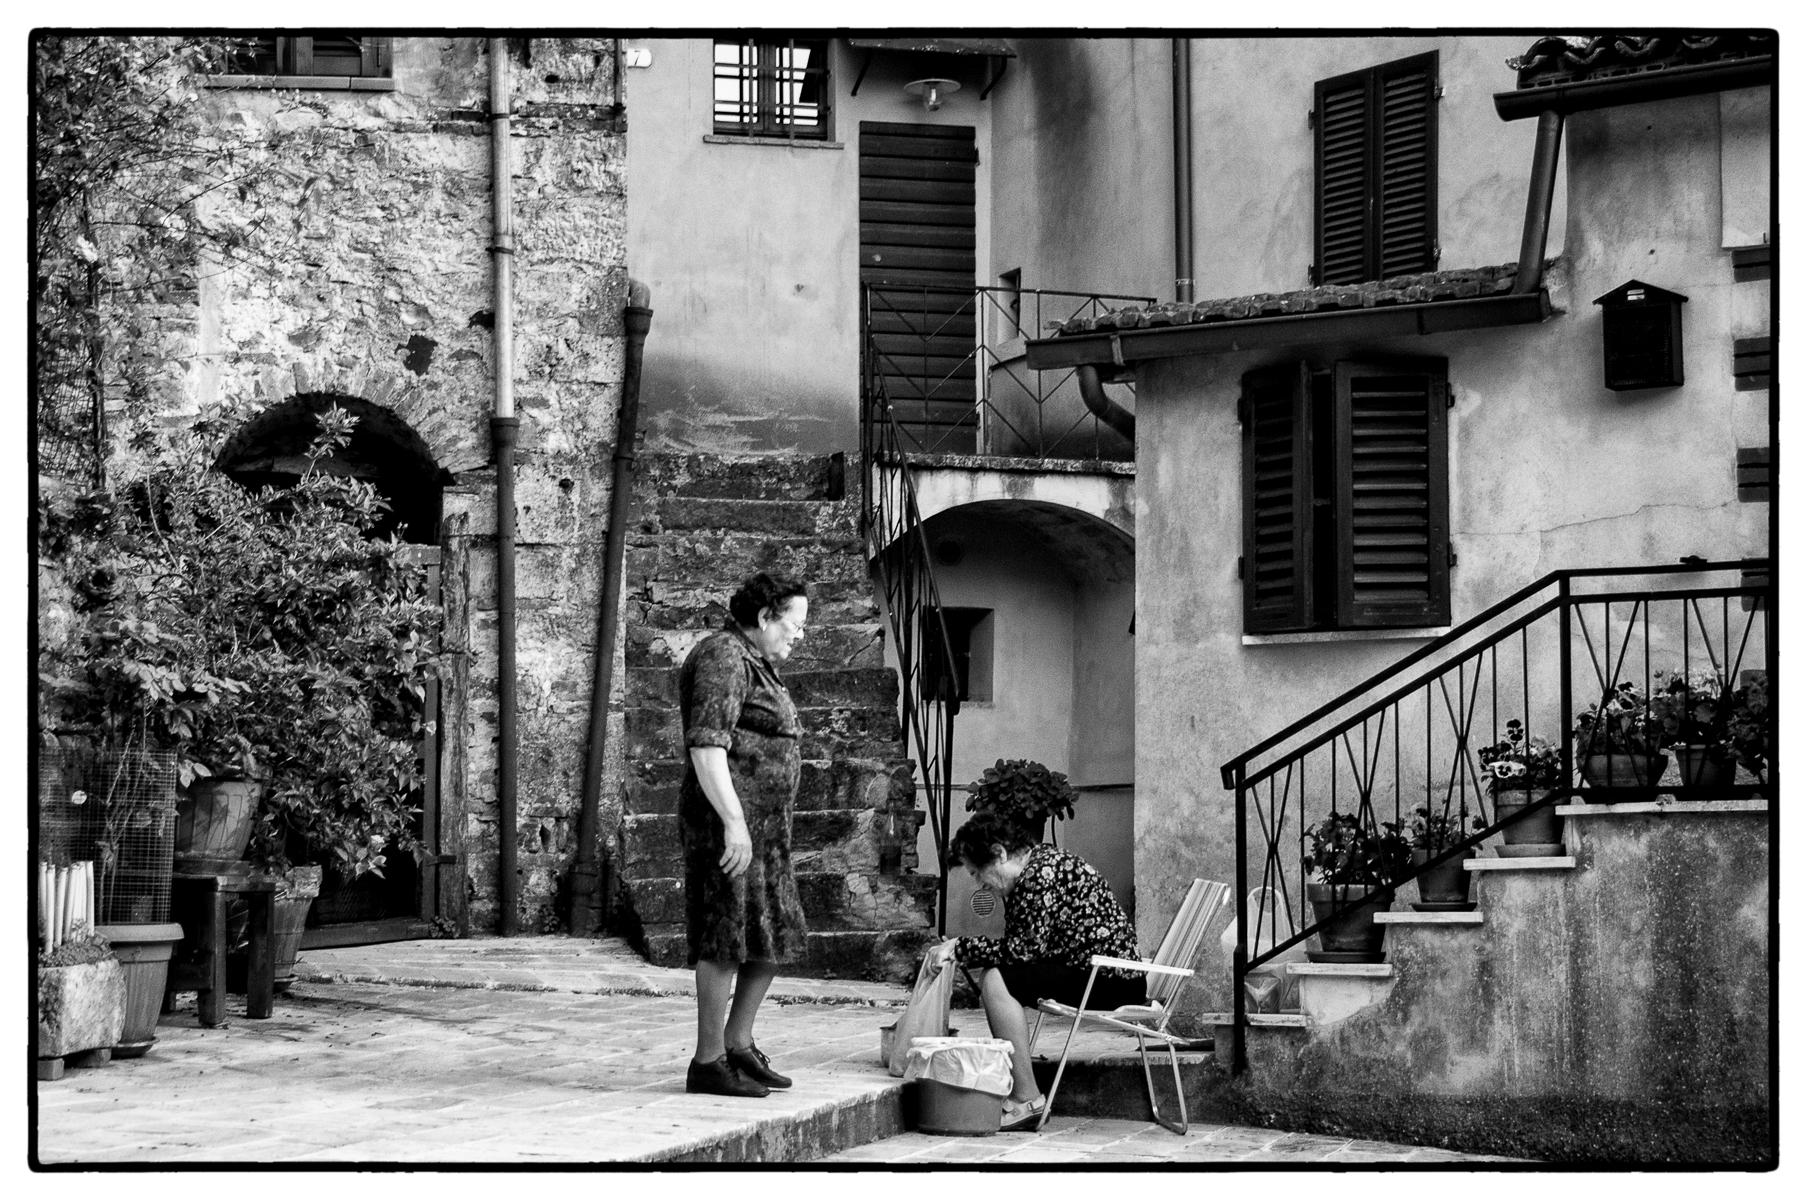 Tuscany : street & stories : TIMOTHY FLOYD PHOTOGRAPHER, NATURE PHOTOGRAPHY, PHOTO ESSAYS, PHOTOJOURNALISM